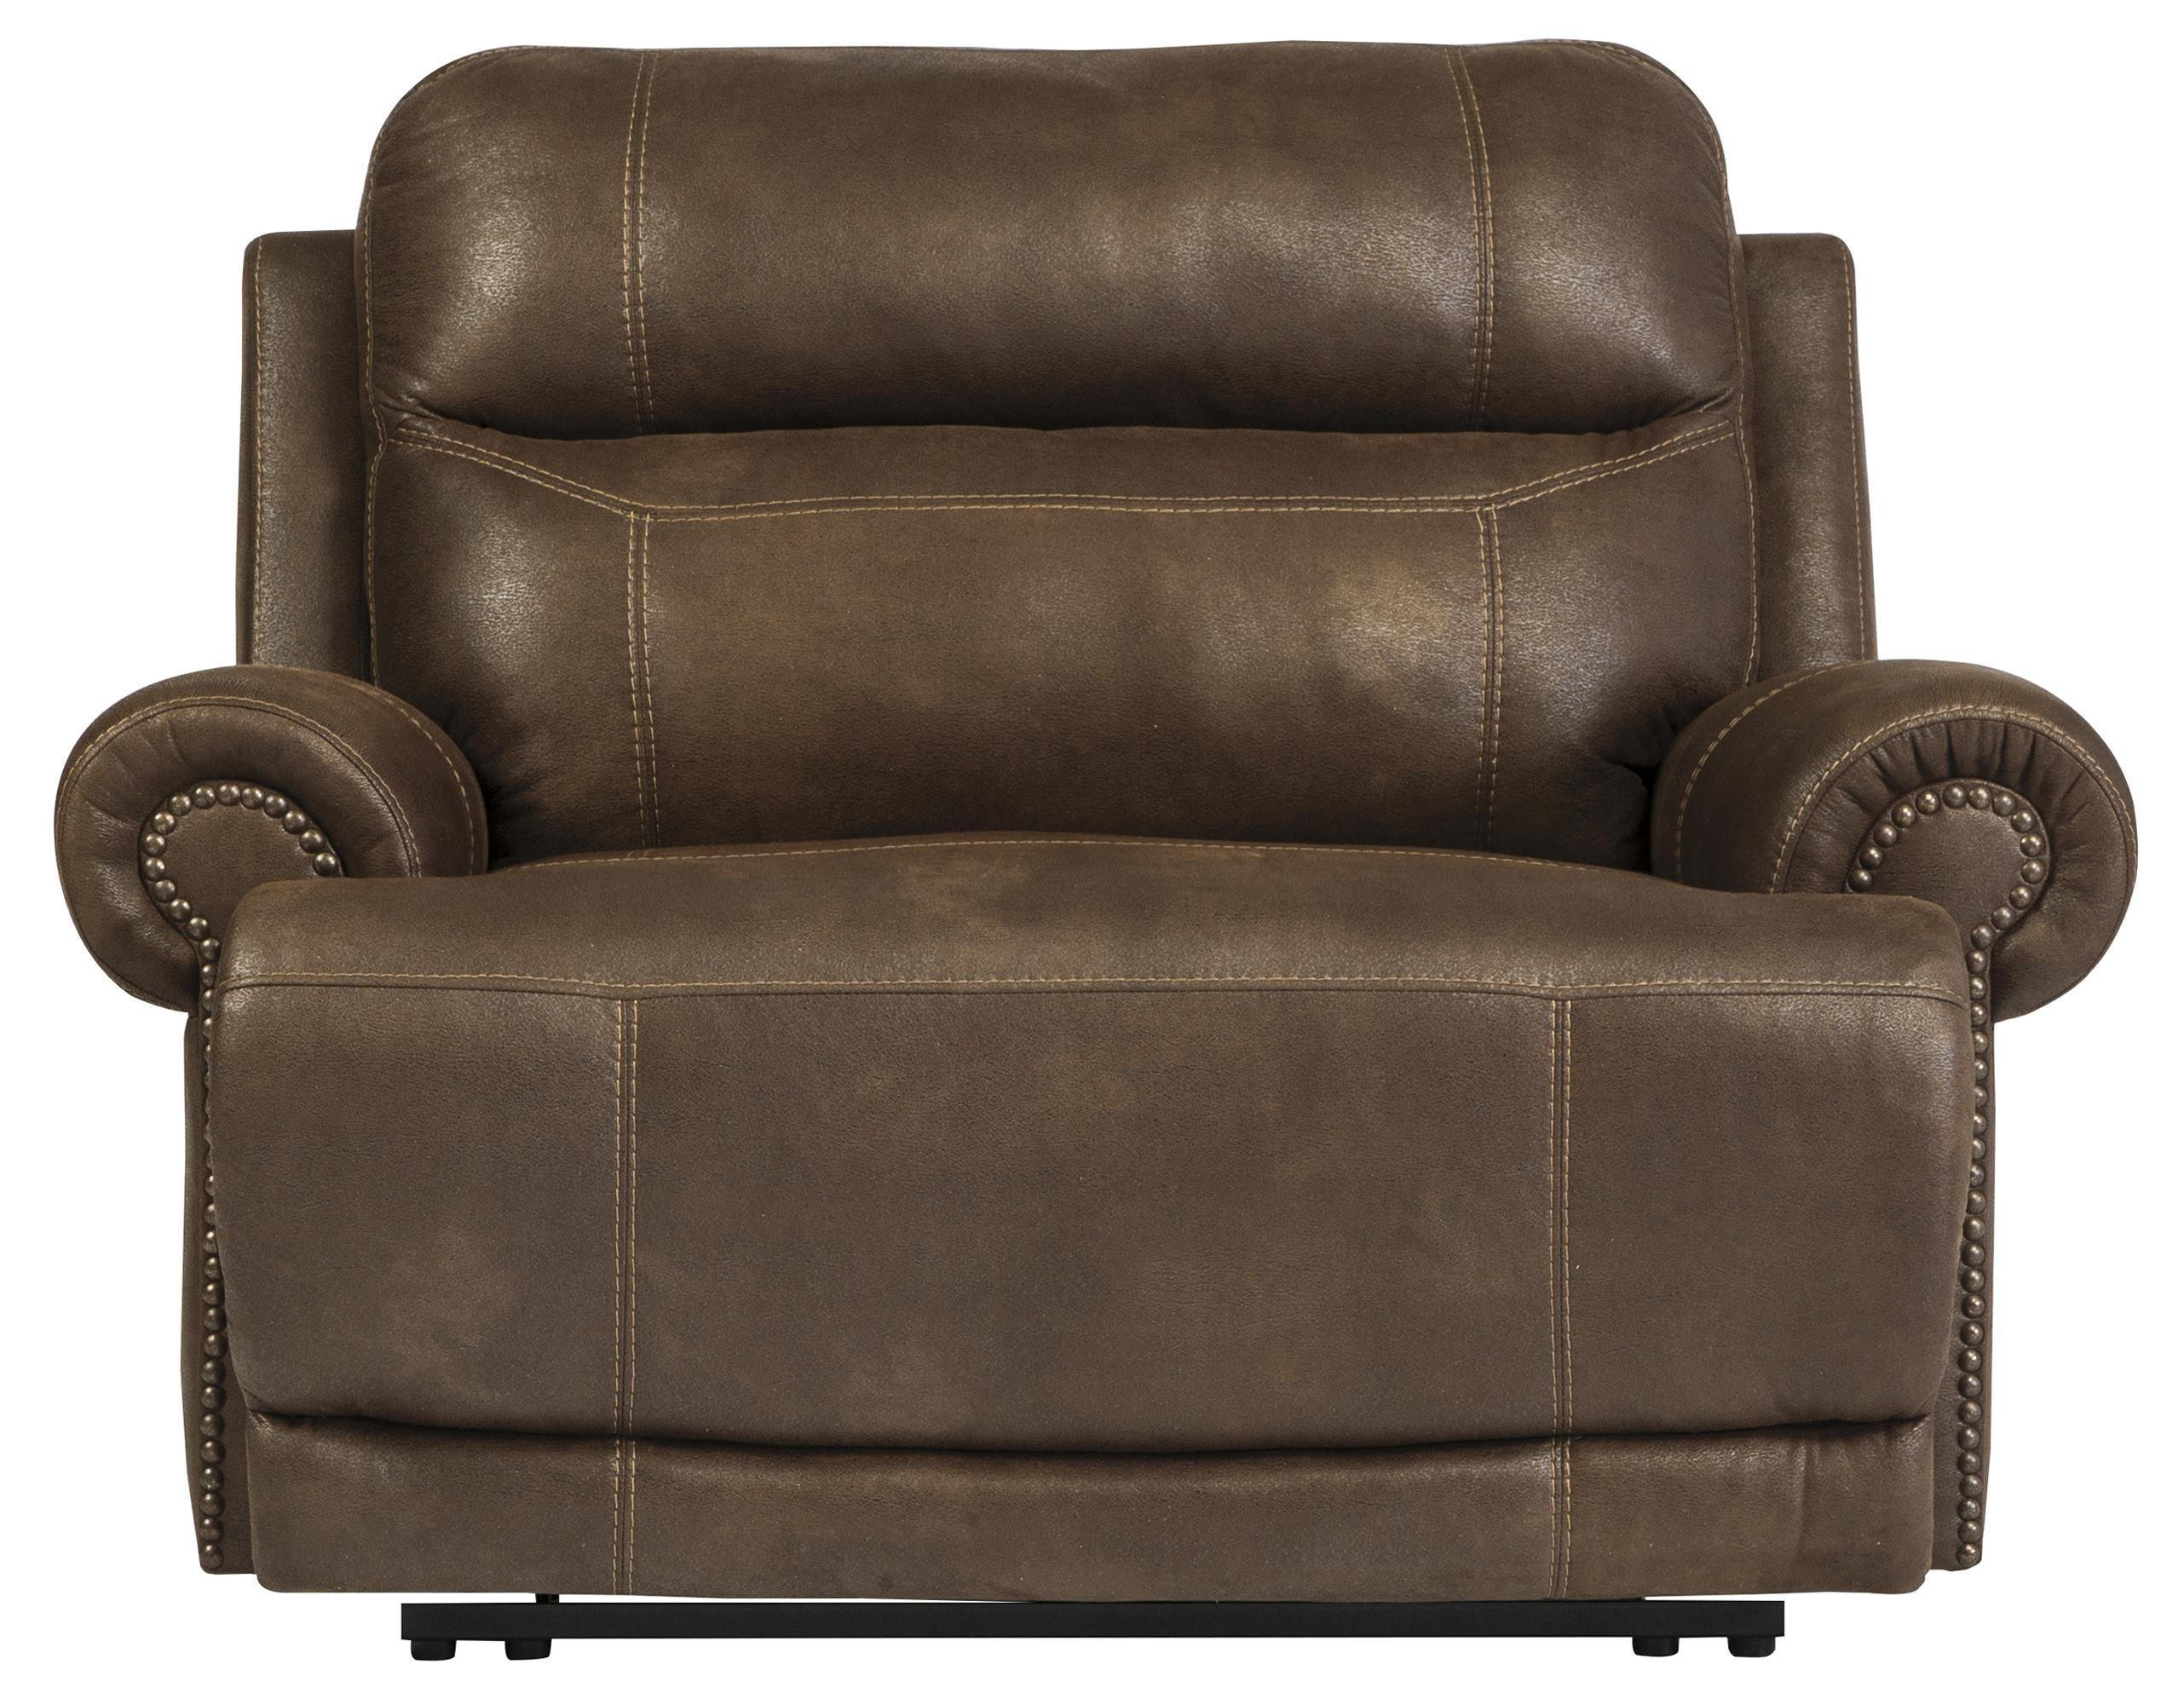 Austere - Brown Zero Wall Recliner by Signature Design at Fisher Home Furnishings